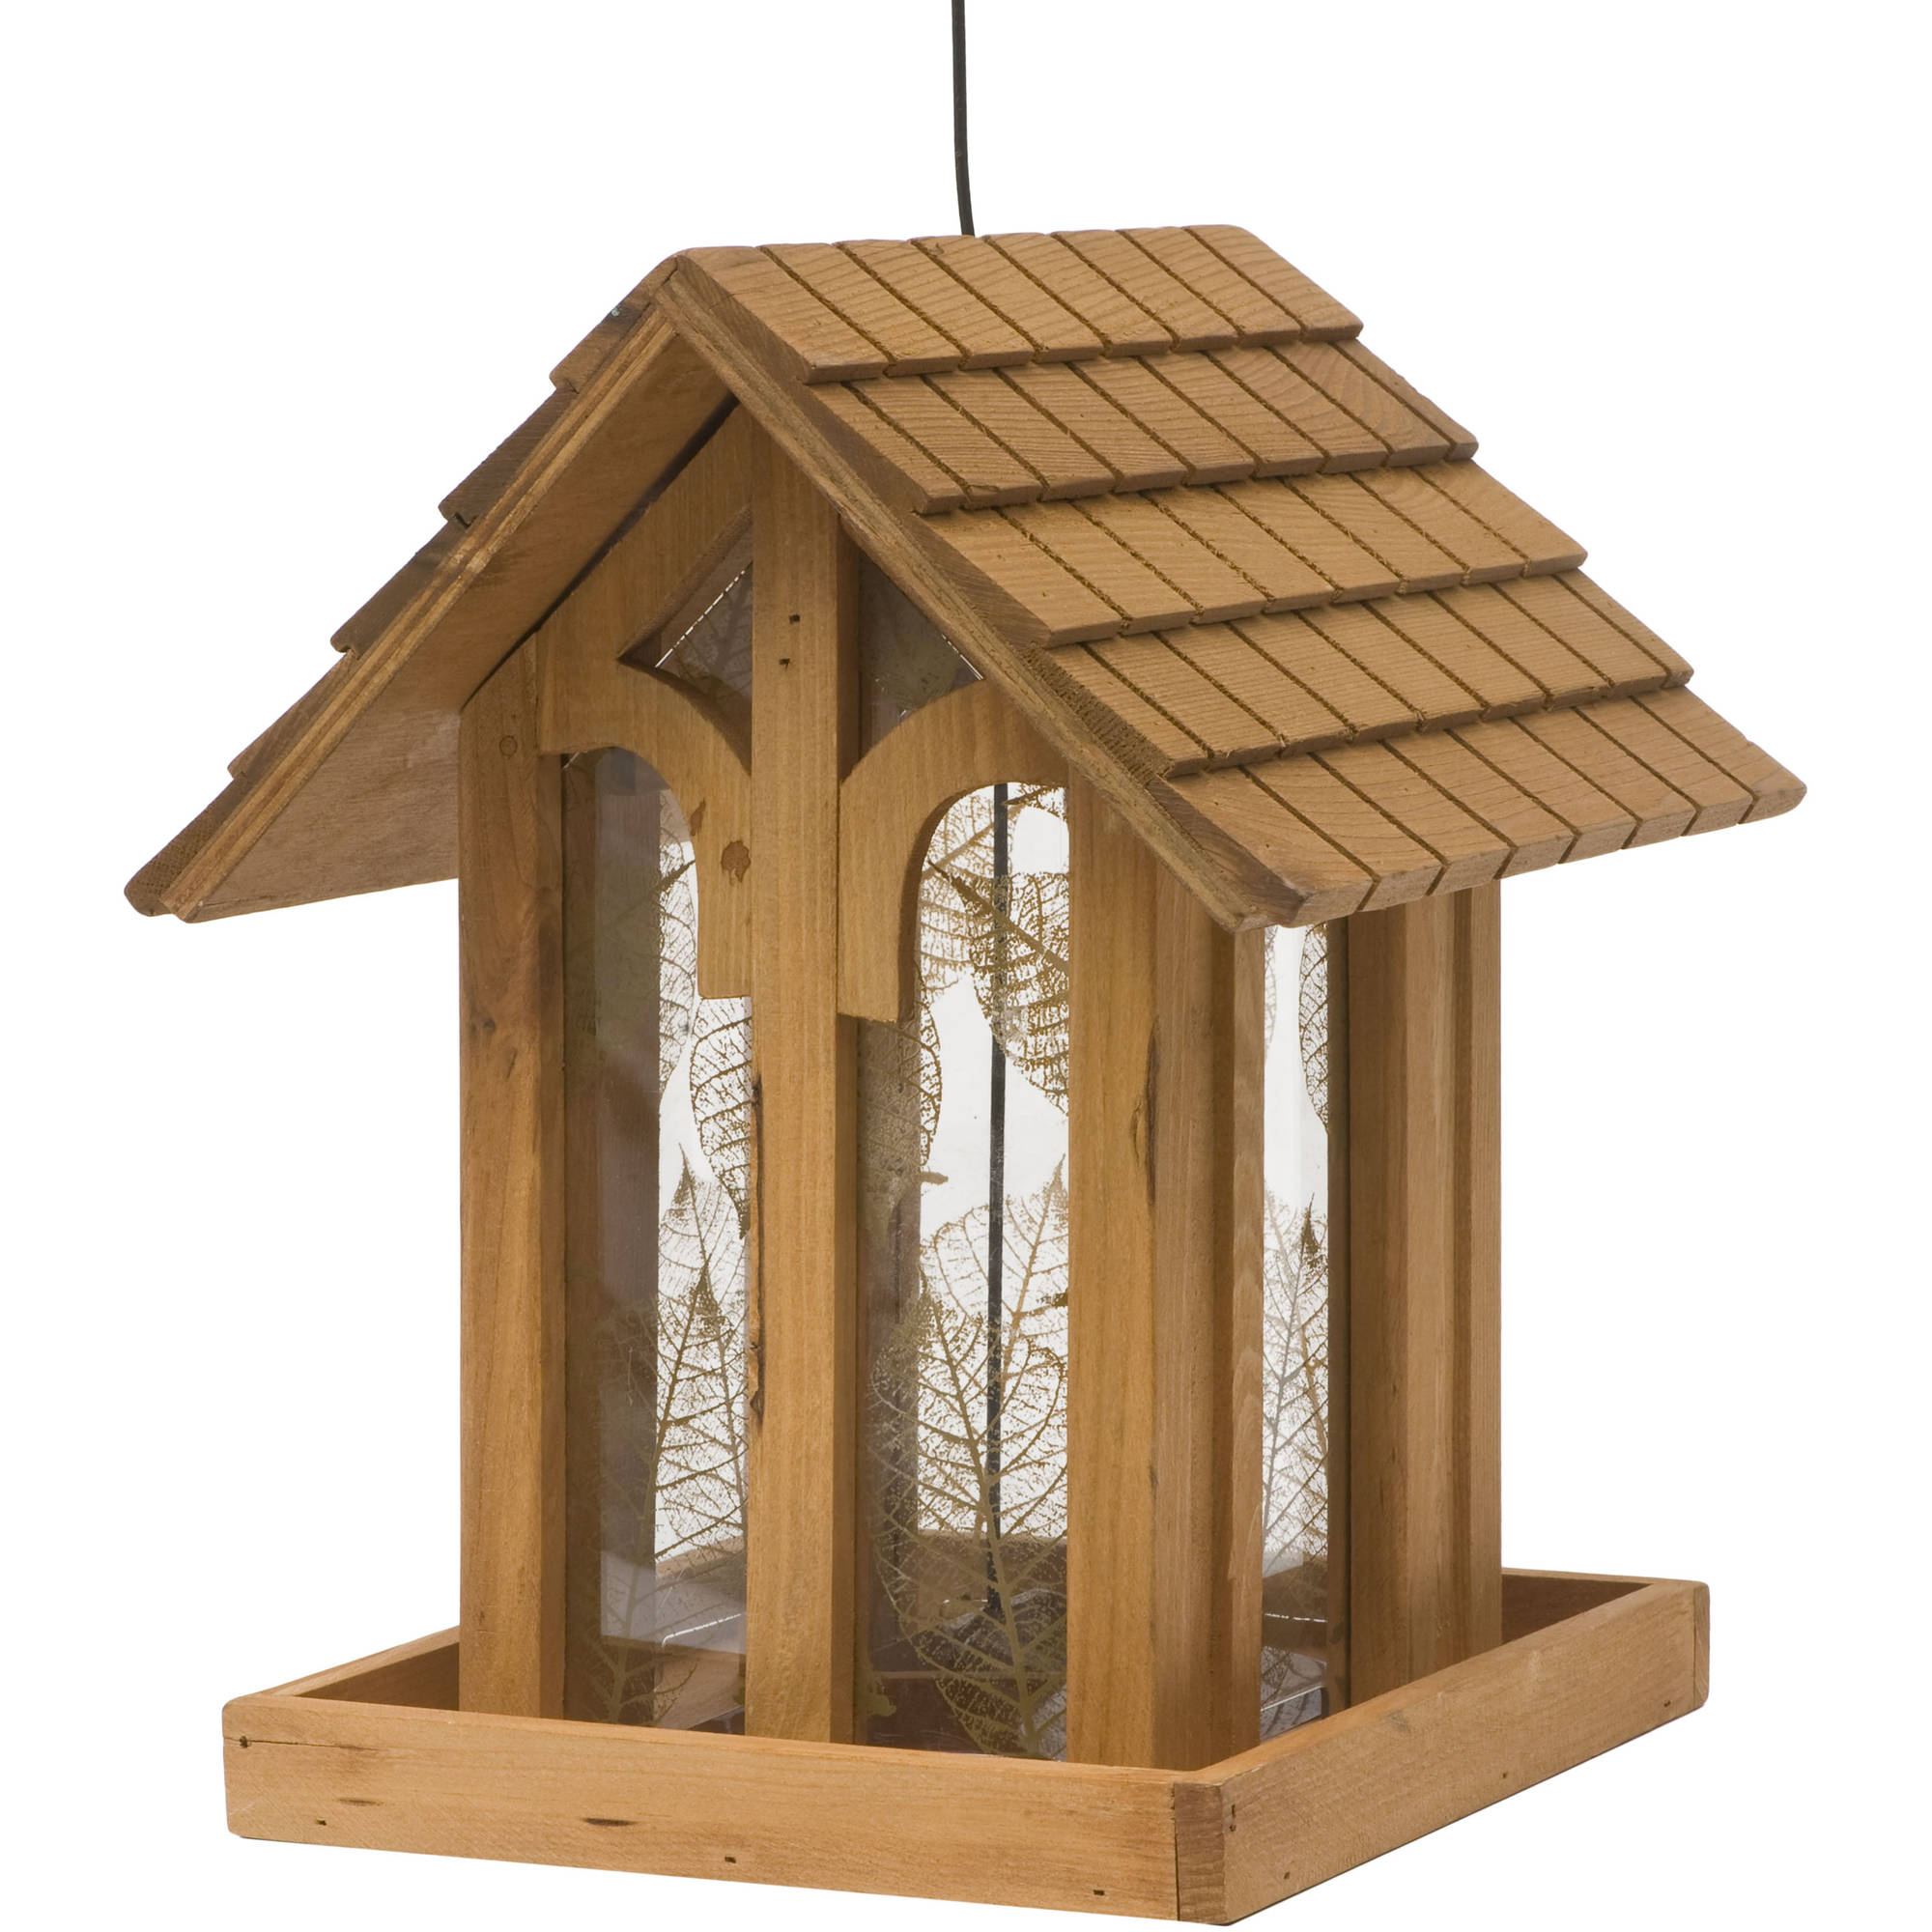 Birdscapes 3.6 Lb. Capacity Fresh Designs Mountain Chapel Birdfeeder by woodstream